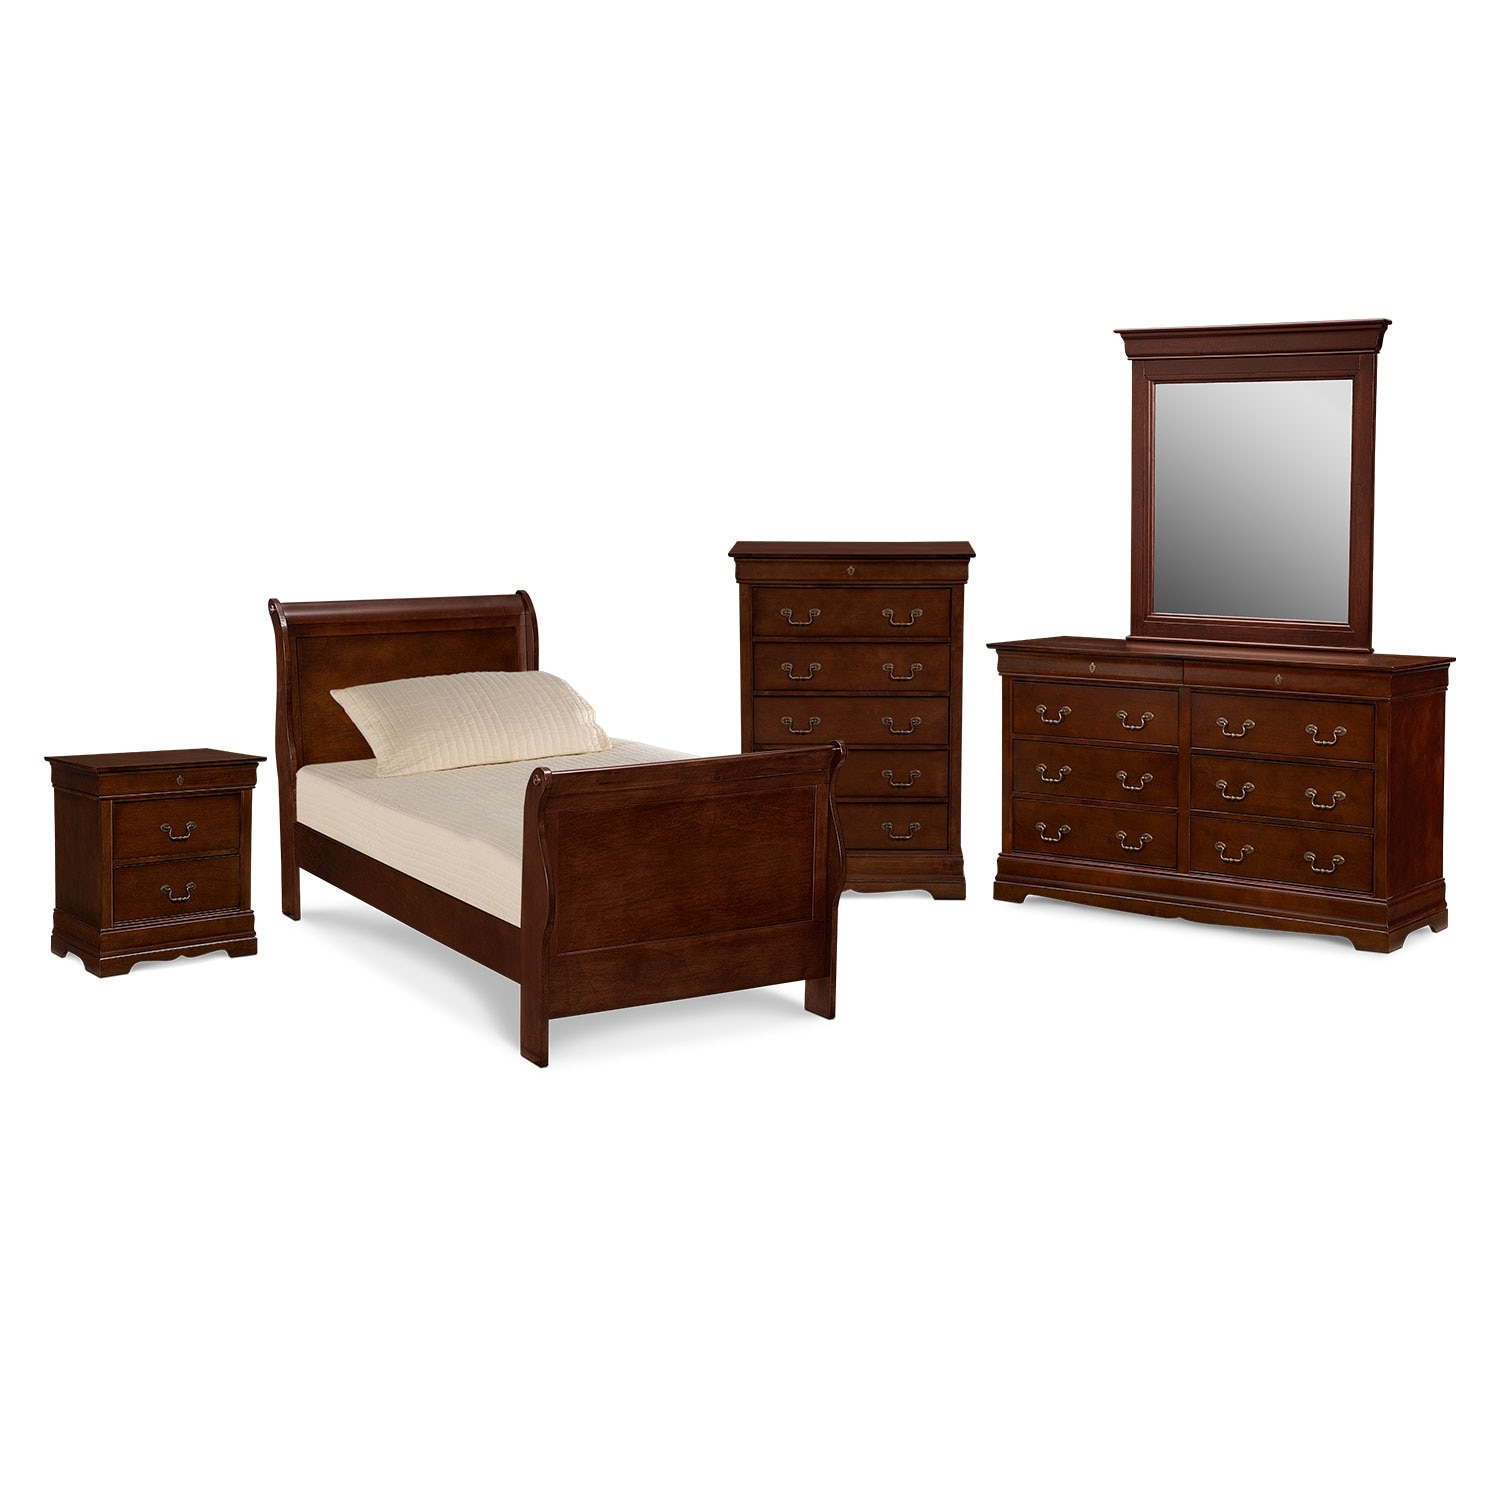 Neo Classic Youth 7 Piece Twin Bedroom Set Cherry American Signature Furn